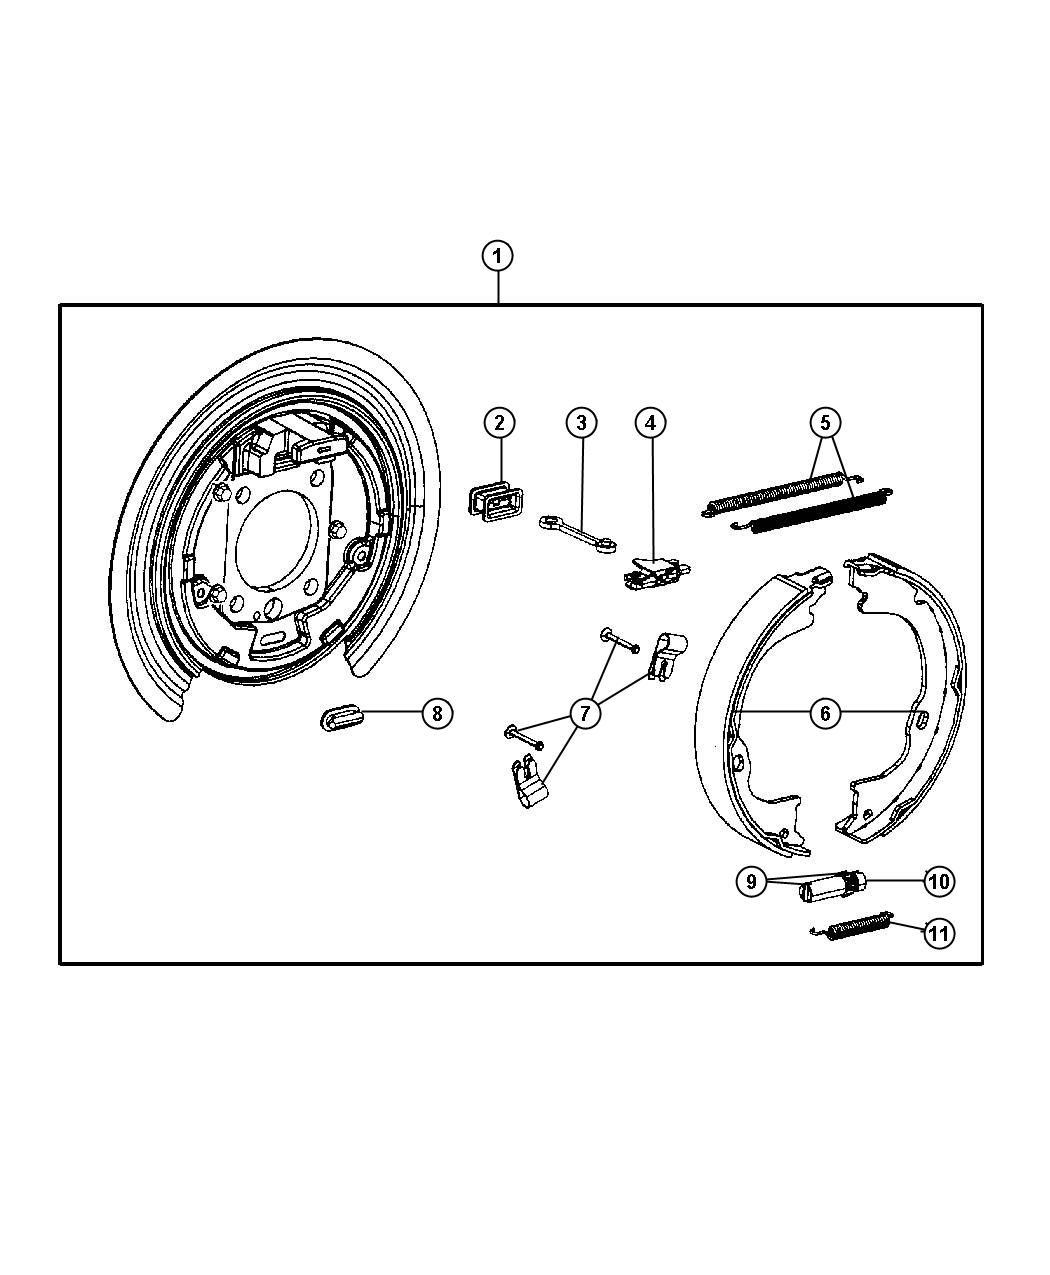 Dodge Magnum Water Pump Location furthermore Chrysler Concorde Engine Diagram furthermore Cabin Air Filter Location 2007 Dodge Nitro as well RepairGuideContent furthermore Pontiac G5 Thermostat Location. on dodge avenger oil drain plug